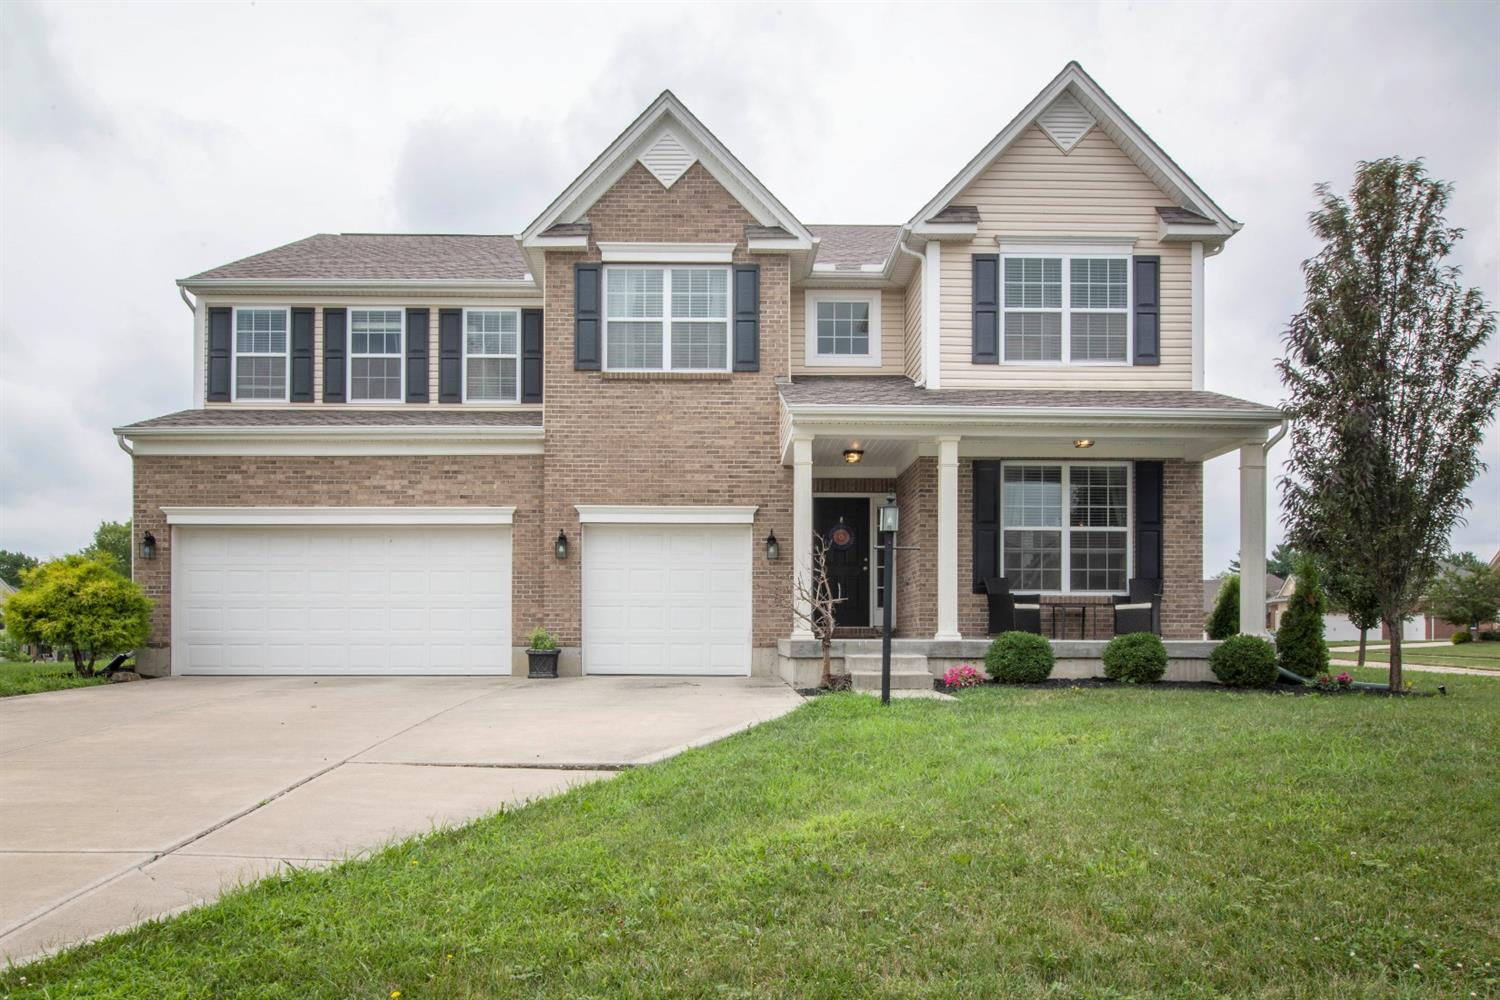 7876 Spring Garden Ct West Chester - East, OH